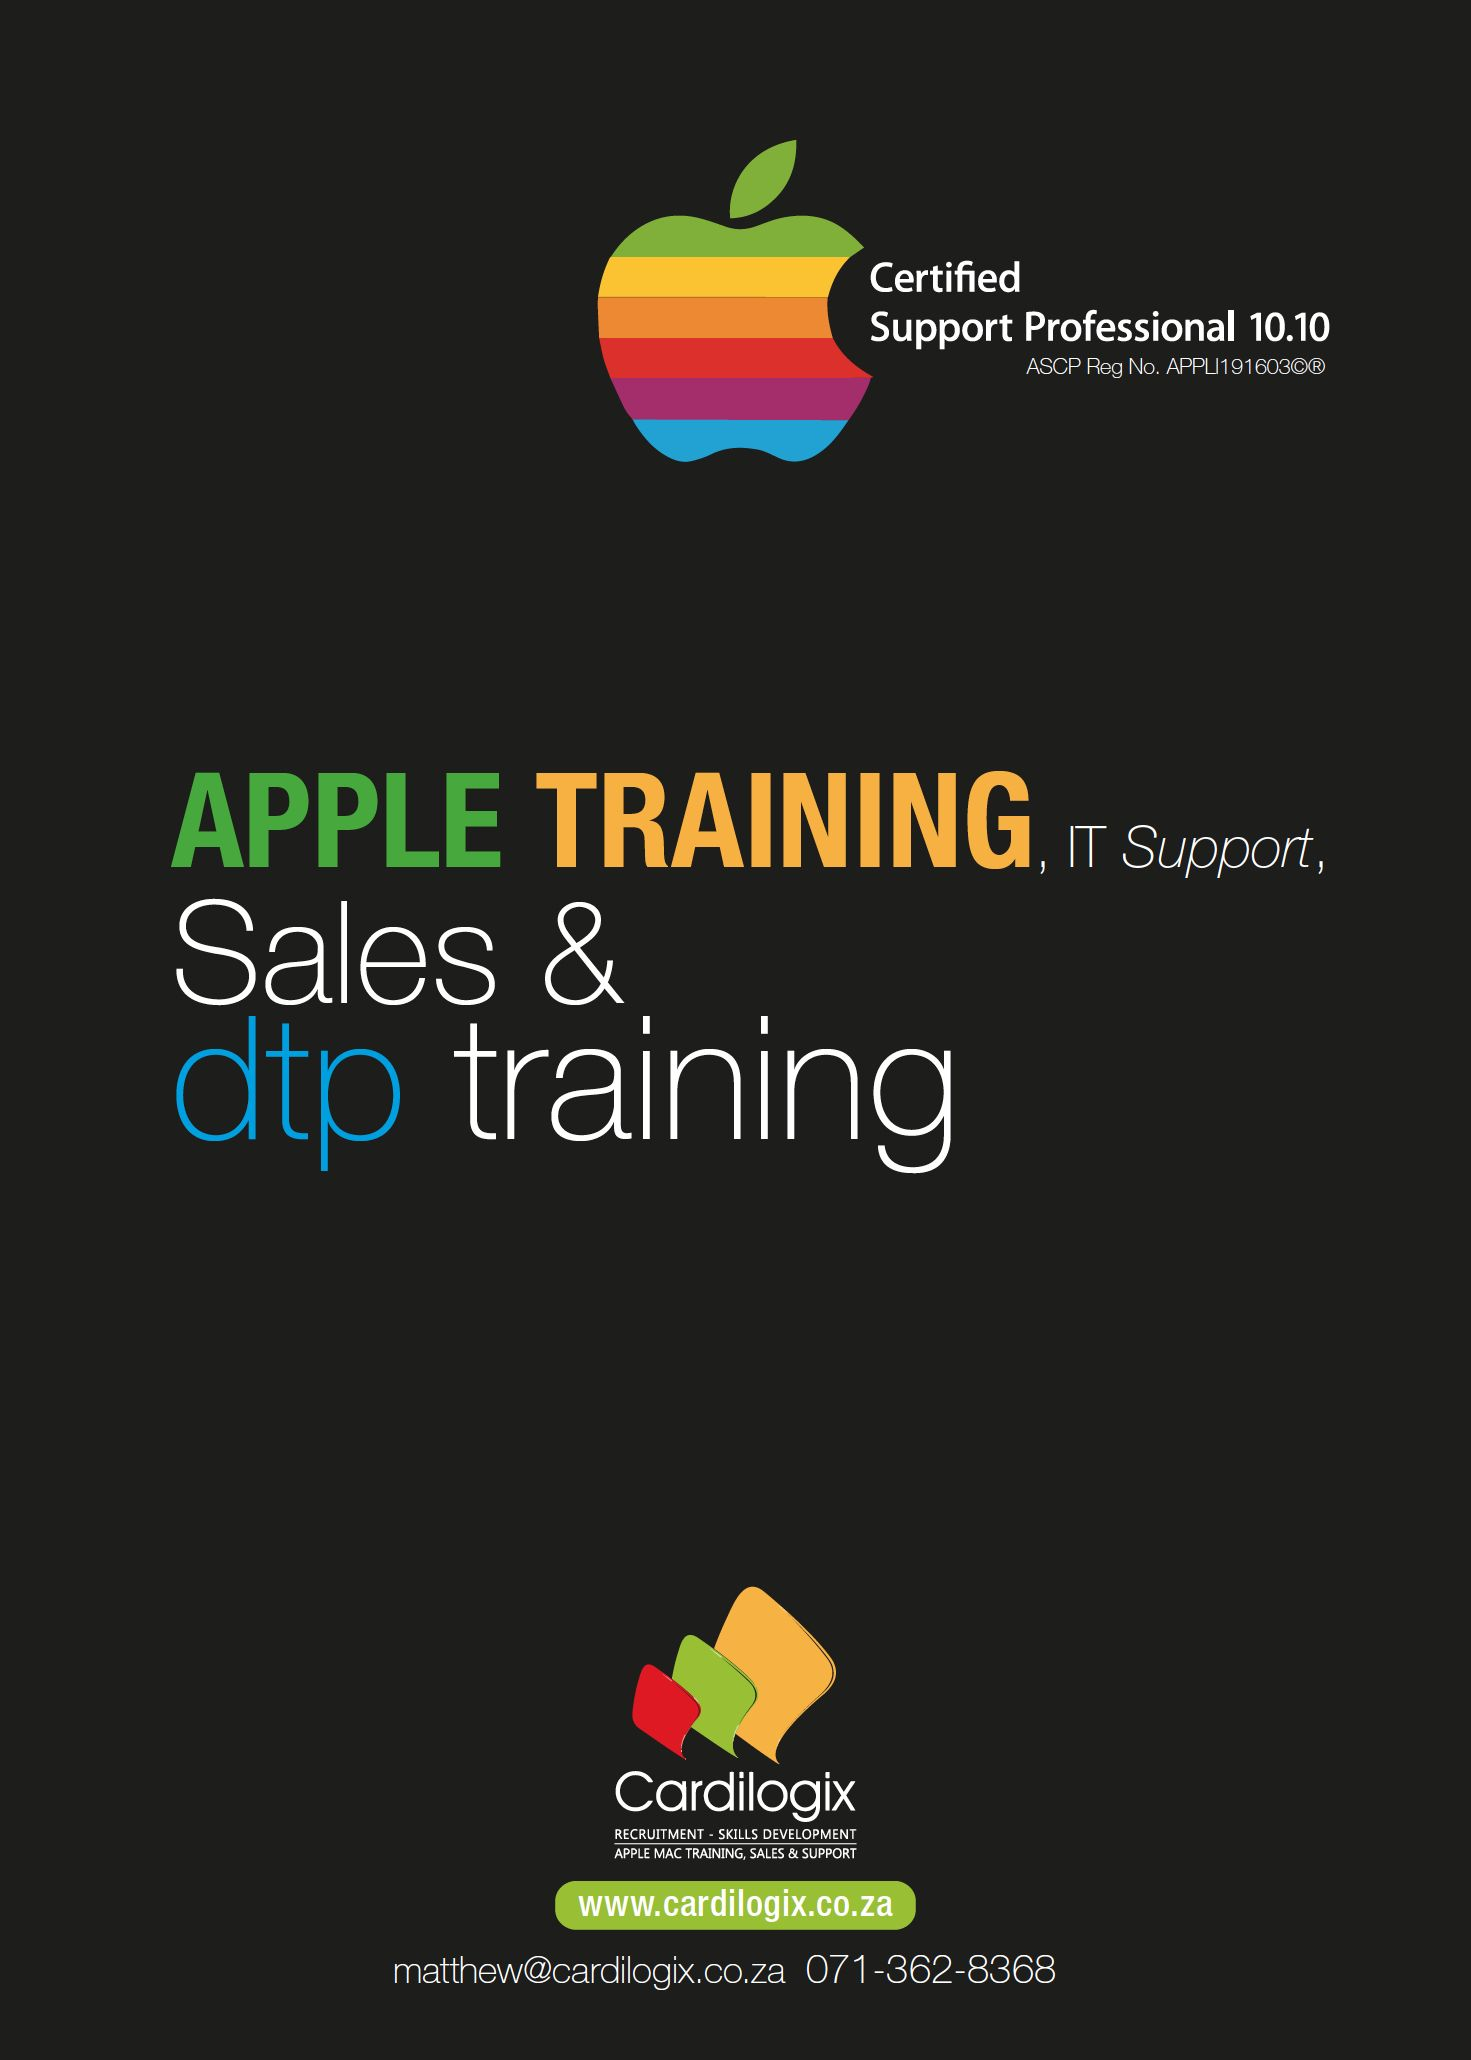 Sales Training Apple Supportlocal Supportlocalbusiness New